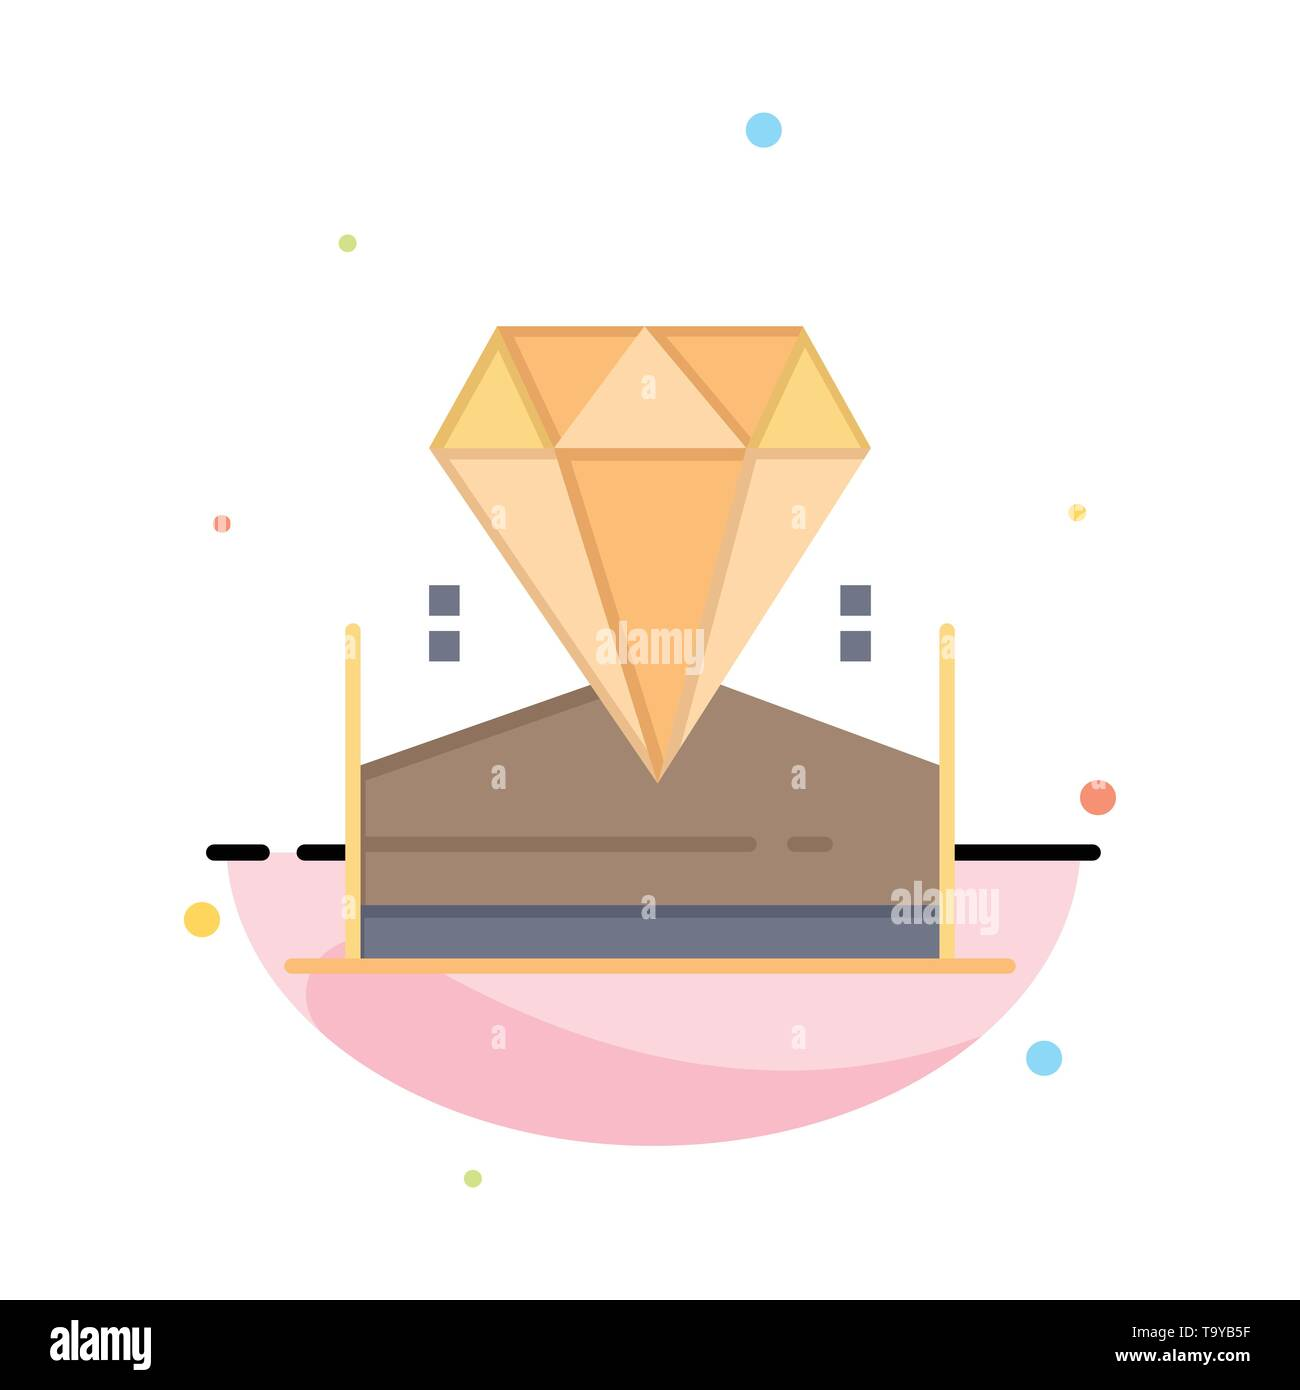 Brilliant, Diamond, Jewel, Hotel Abstract Flat Color Icon Template - Stock Image